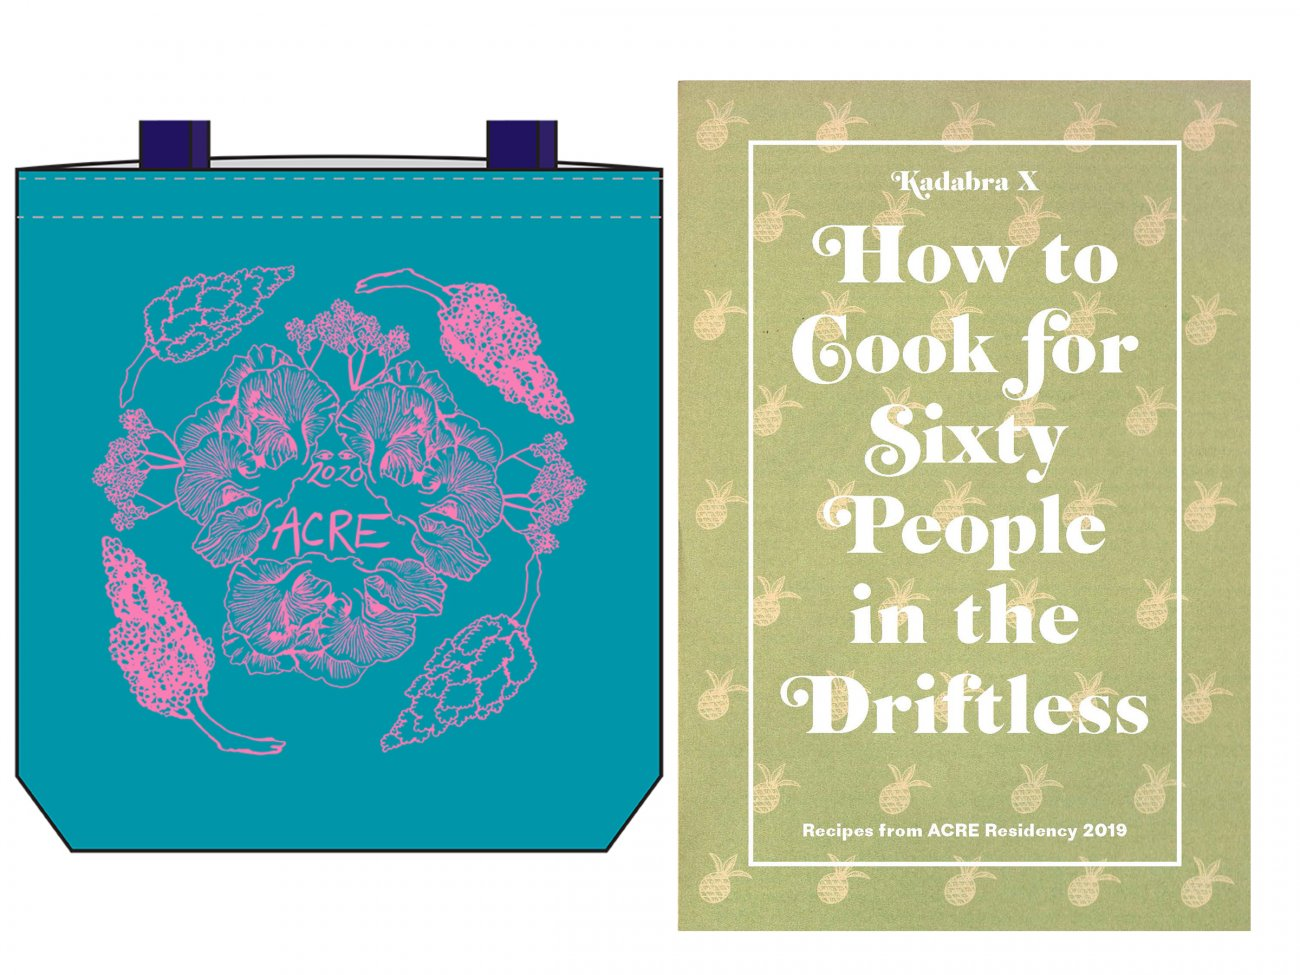 Teal ACRE totebag on left and green cookbook cover on right